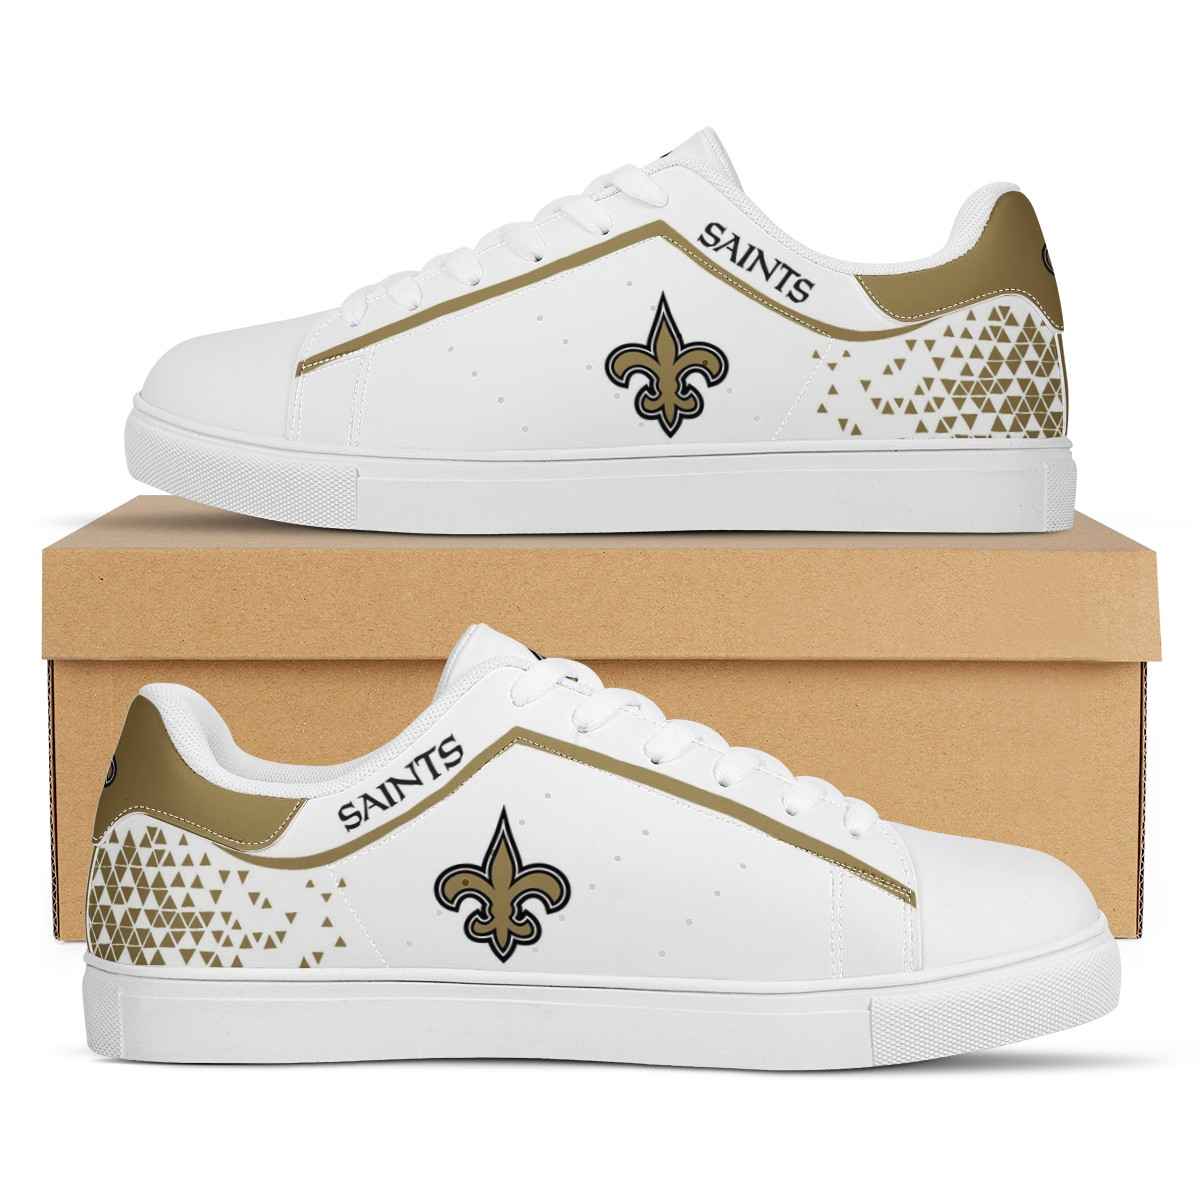 Women's New Orleans Saints Low Top Leather Sneakers 003